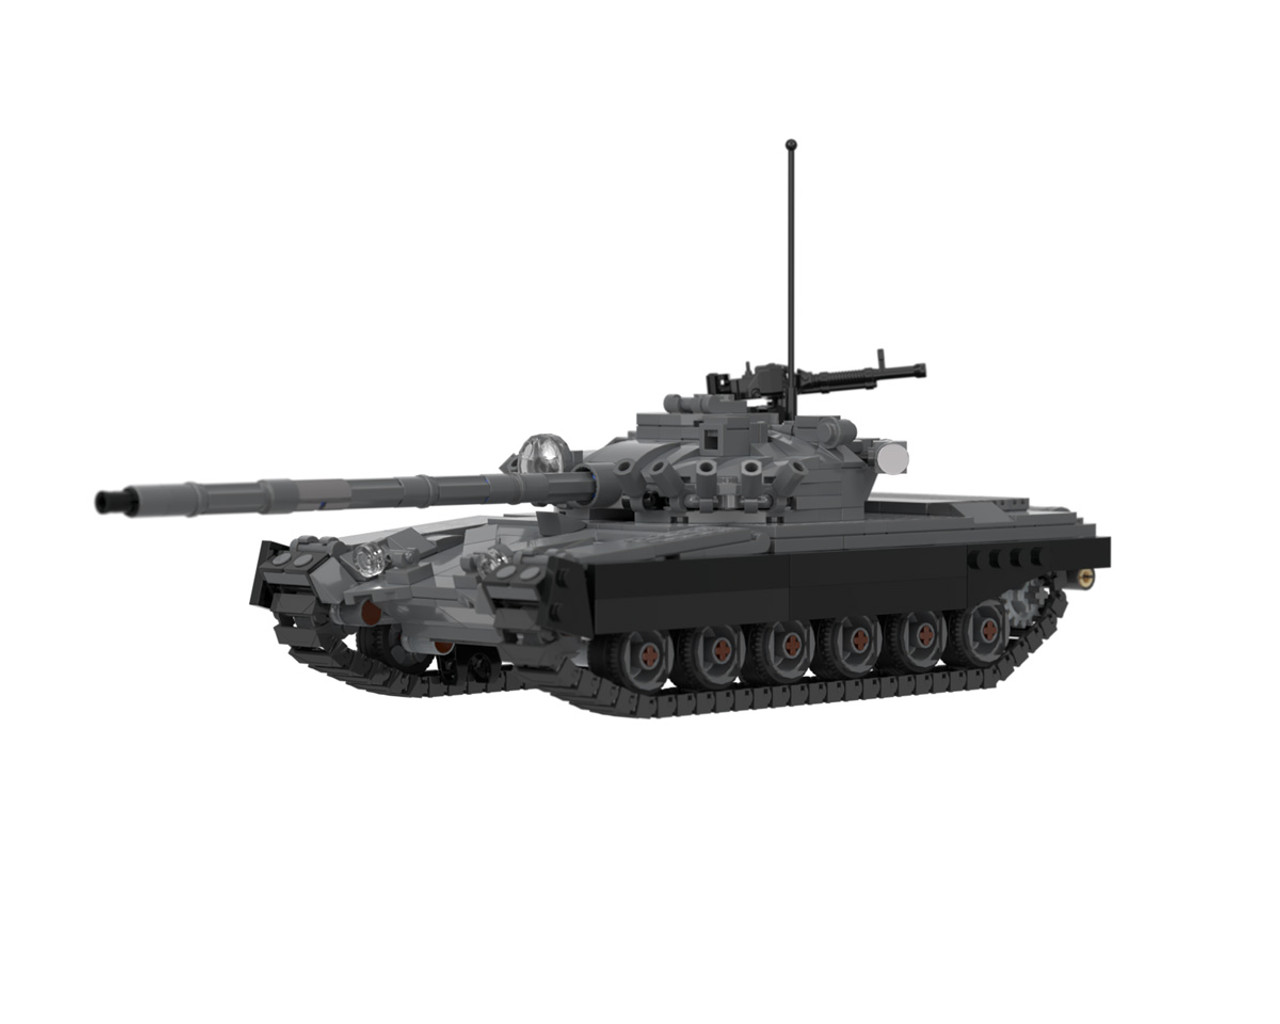 T-72a - Main Battle Tank